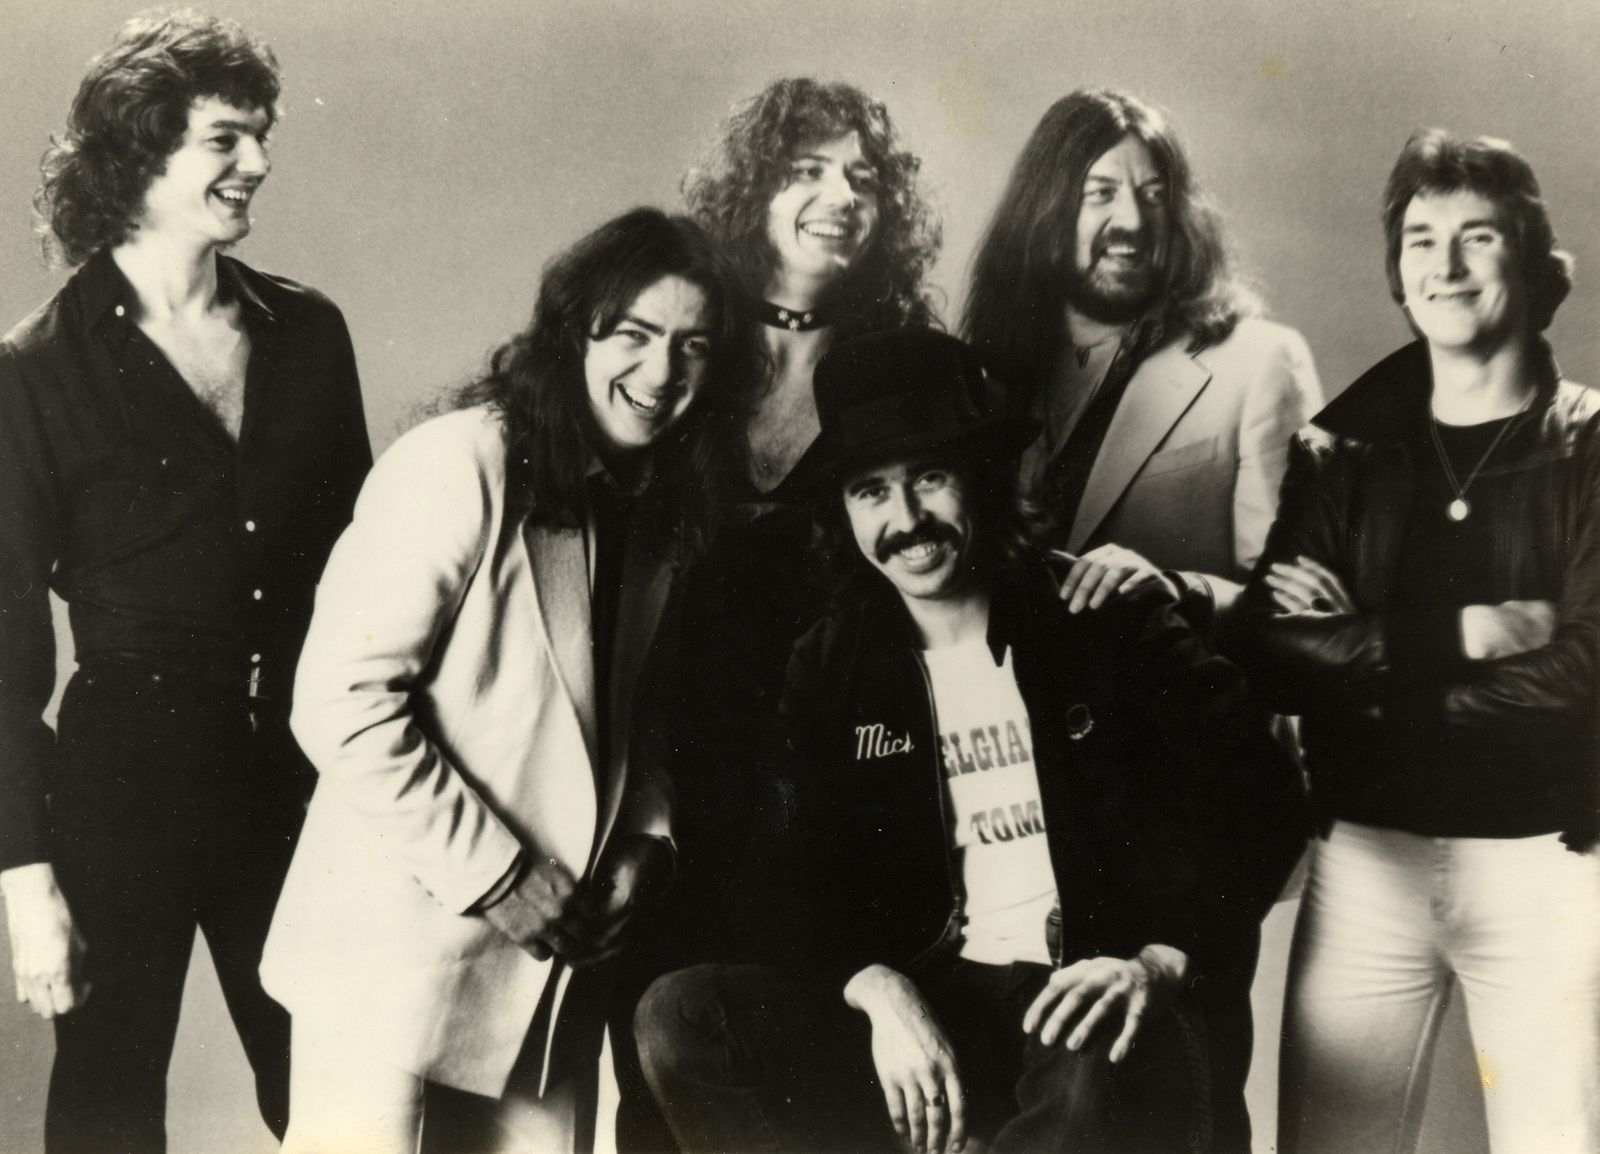 Jon Lord, Neil Murray, Bernie Madsen, David Coverdale, Micky Moody and Dave Doody (Whitesnake, 1978)